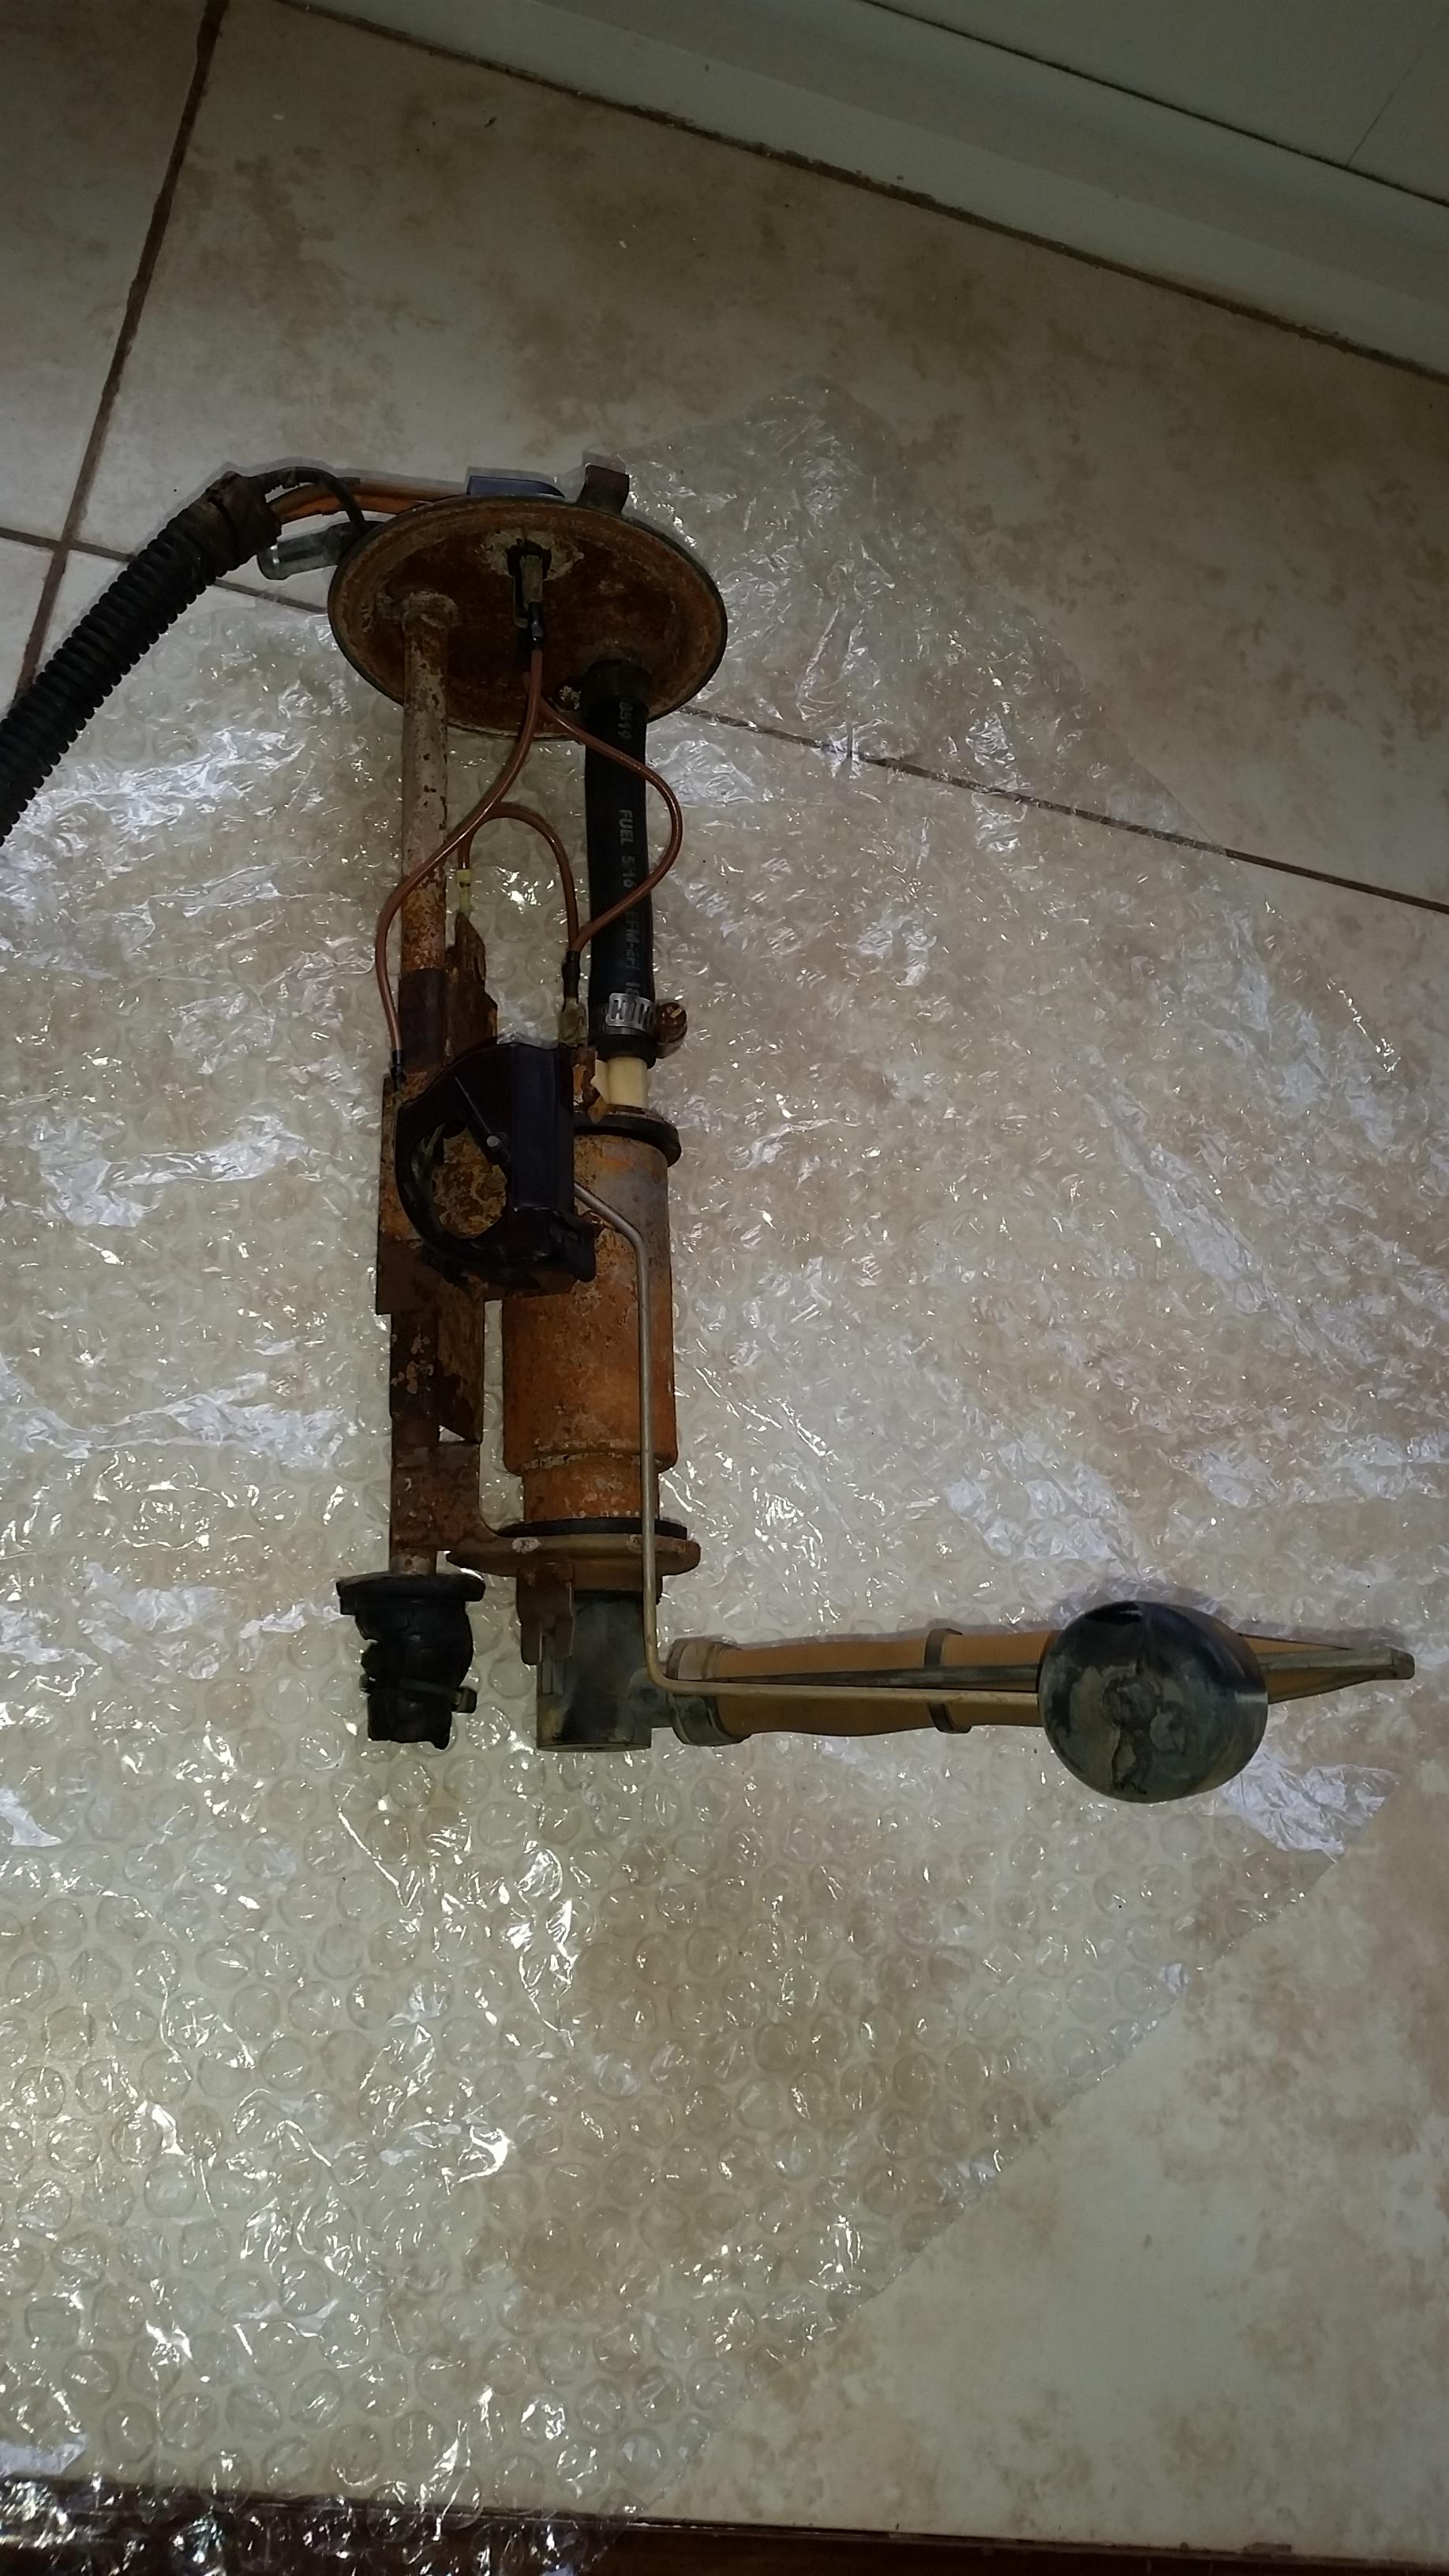 Jeep 1990 Yj 25l Drives 35 Minutes Well Then Stalls Wrangler Fuel Filter Pump 1